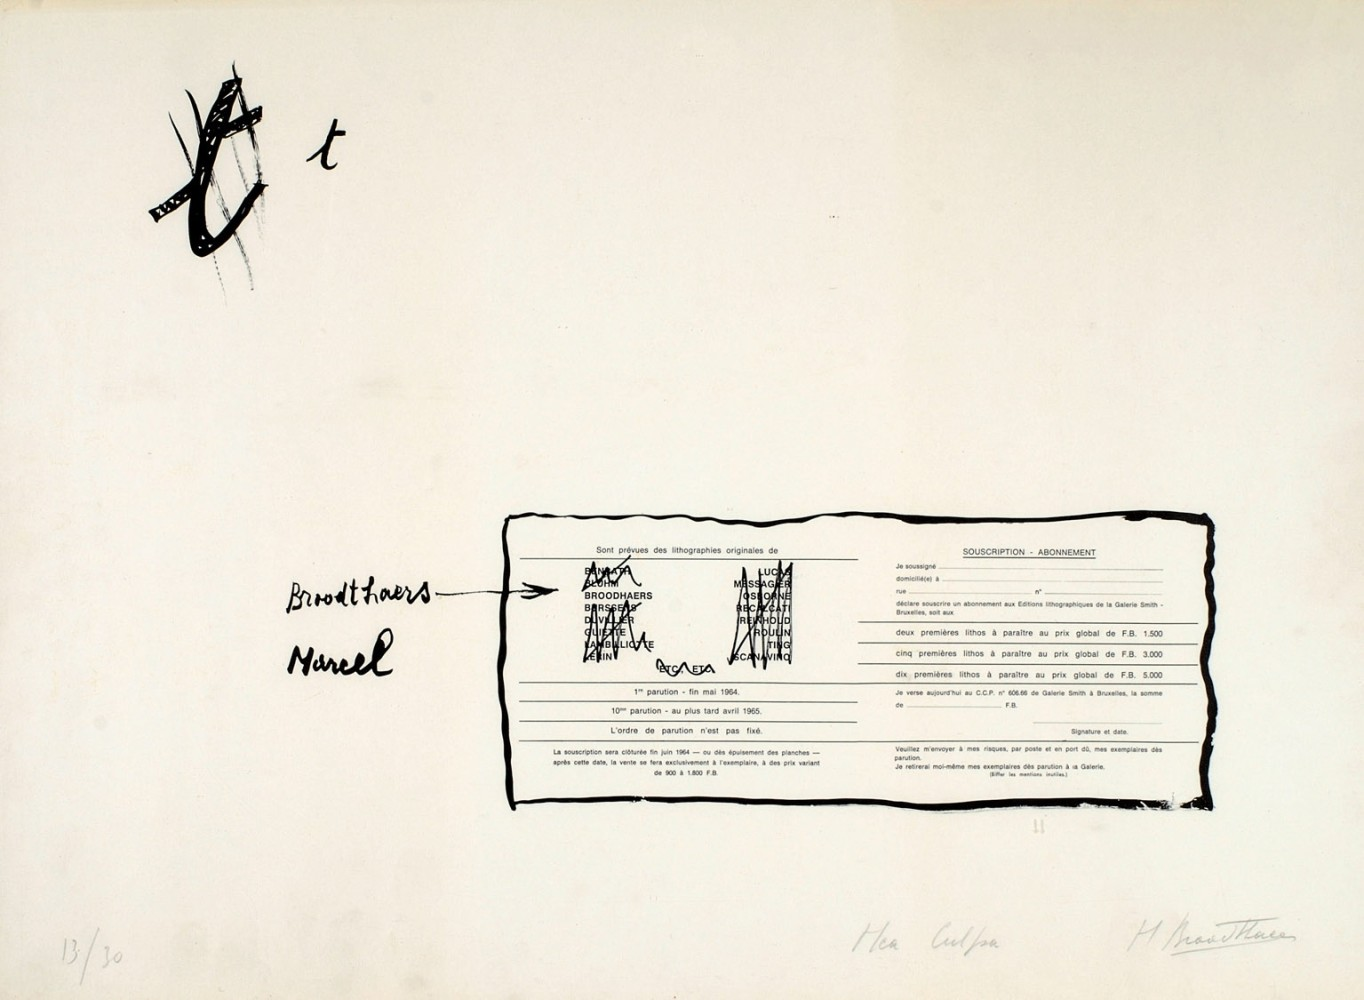 <div class=&#34;artist&#34;><strong>Marcel BROODTHAERS</strong></div> 1924 - 1976 <div class=&#34;title&#34;><em>La Faute d'orthographe (Mea culpa)</em>, 1964</div> <div class=&#34;signed_and_dated&#34;>Signed, numbered 3/30</div> <div class=&#34;medium&#34;>Offset print in two colours (black and white) on paper</div> <div class=&#34;dimensions&#34;>45 x 60.5 cm</div> <div class=&#34;edition_details&#34;>Edition 3 of 30</div>